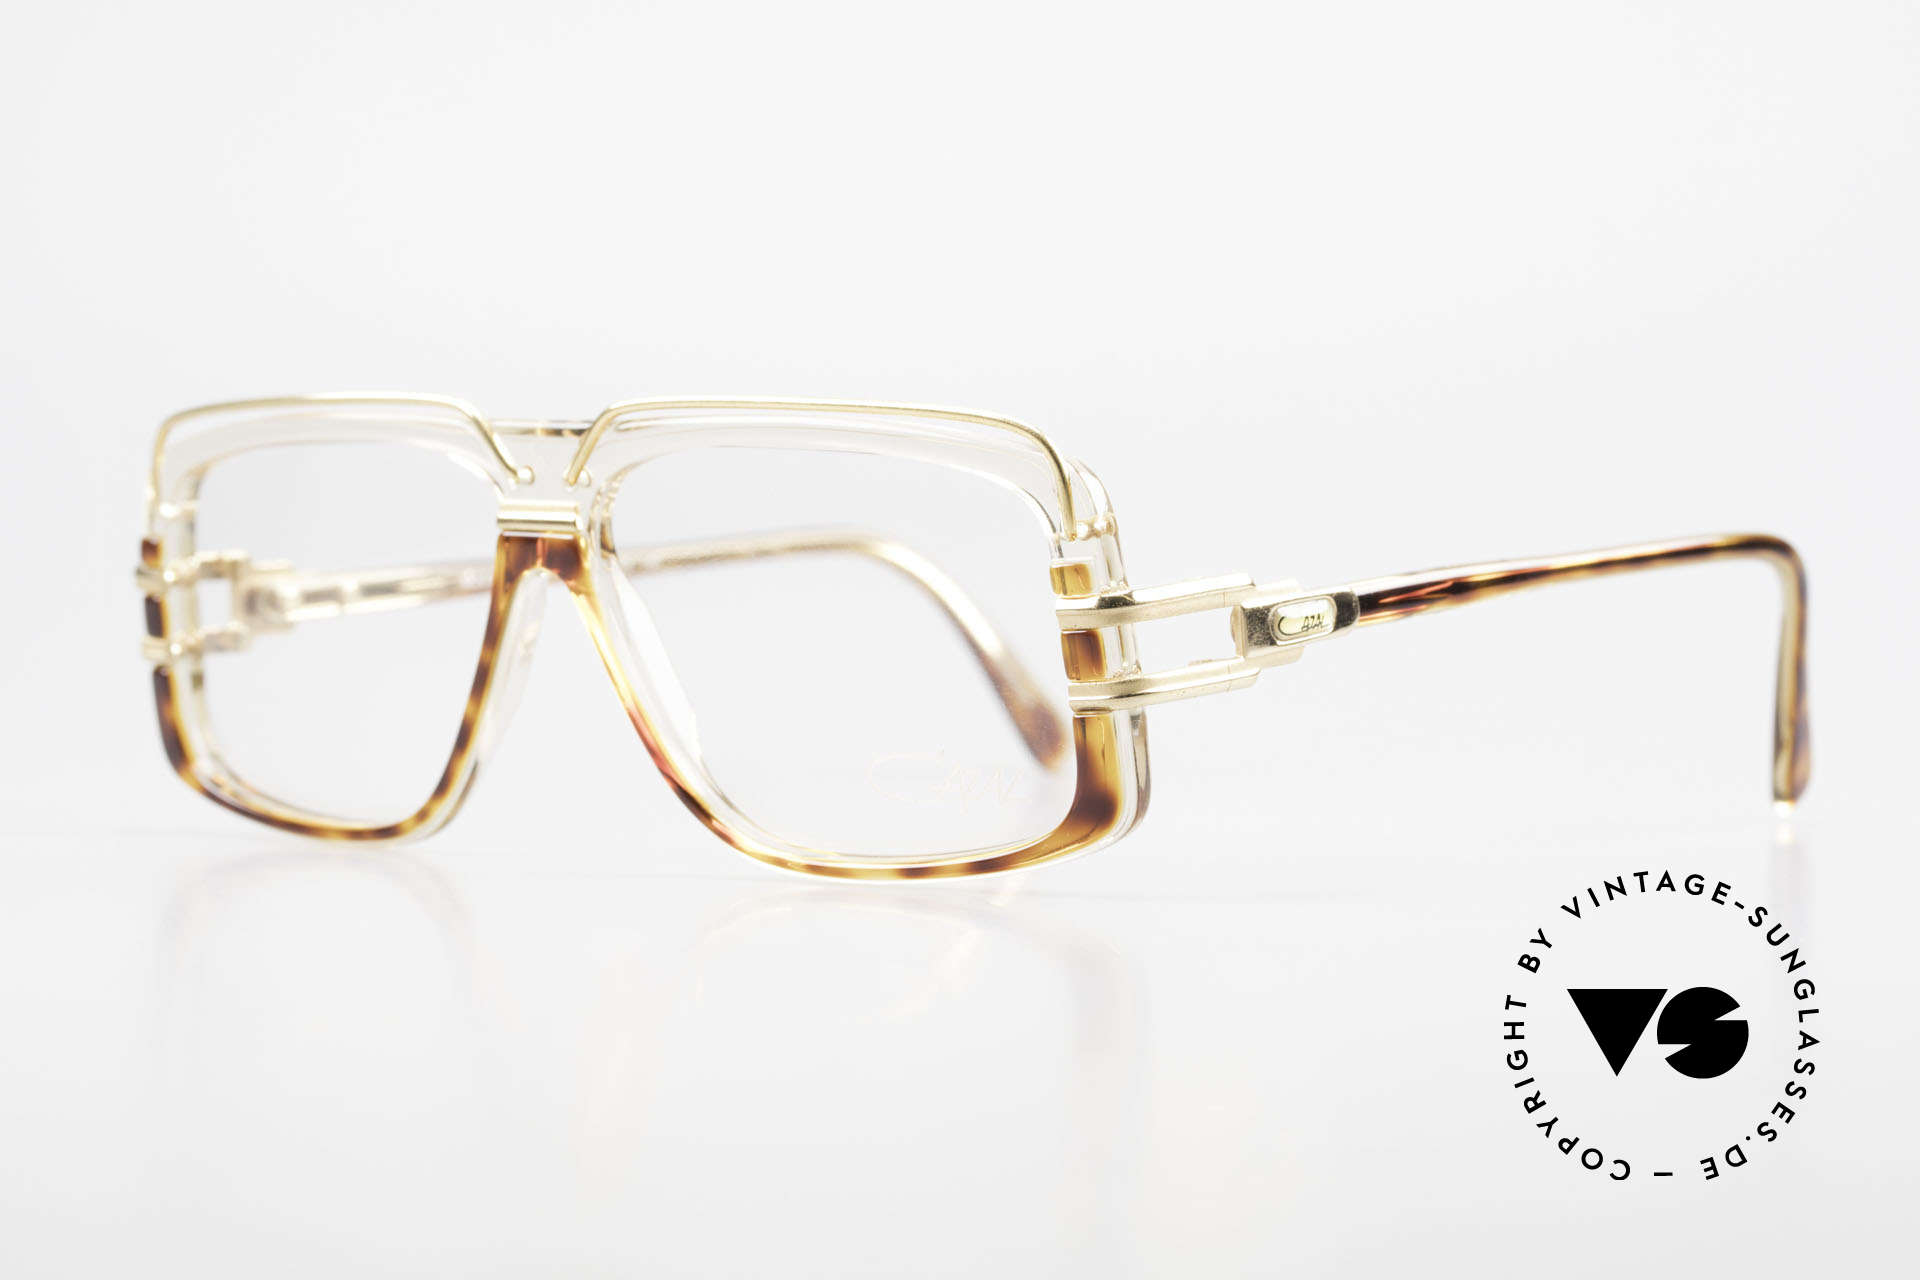 Cazal 640 90's Hip Hop Eyeglass Frame, old school frame - a 'must have' in size 58-12, 140, Made for Men